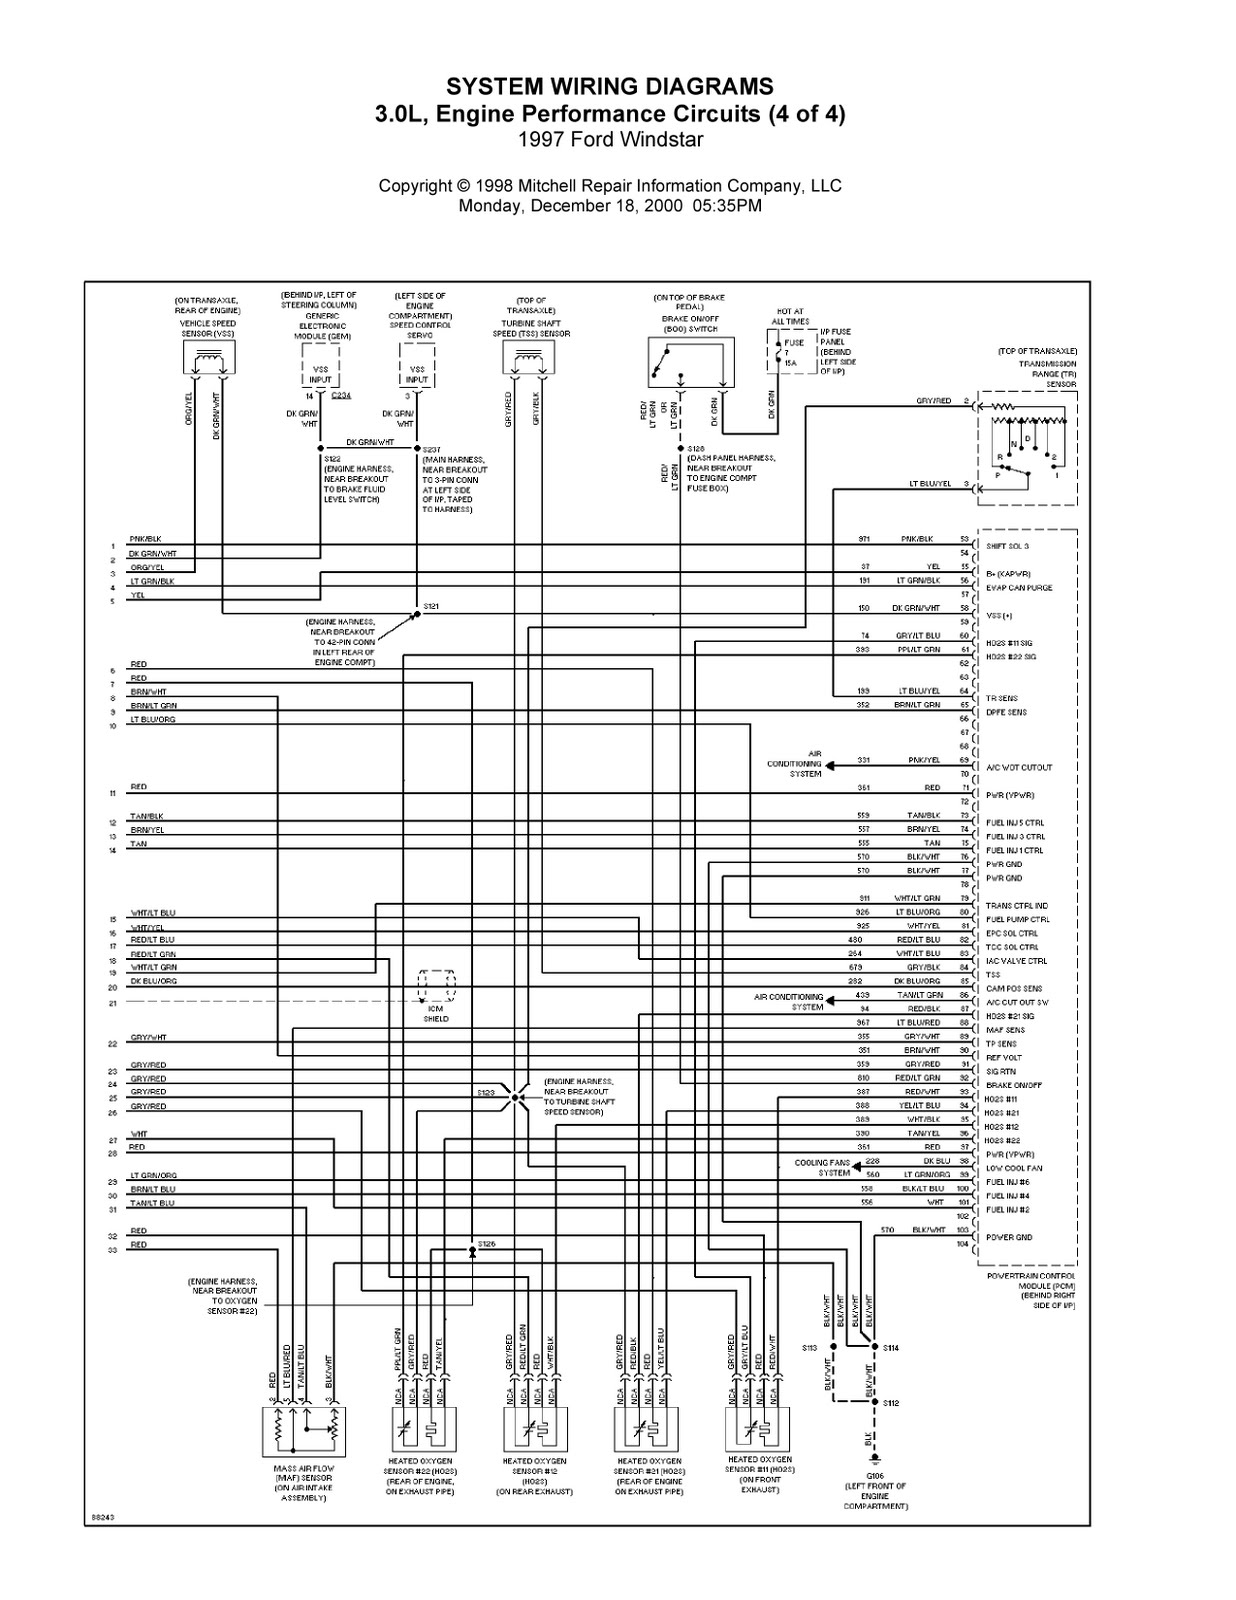 1997 Ford Windstar Complete System Wiring Diagrams 99 Aerostar Diagram We Provide You The Clear And Readable Images This Makes Easier To Comprehend Whole Parts In Schematic